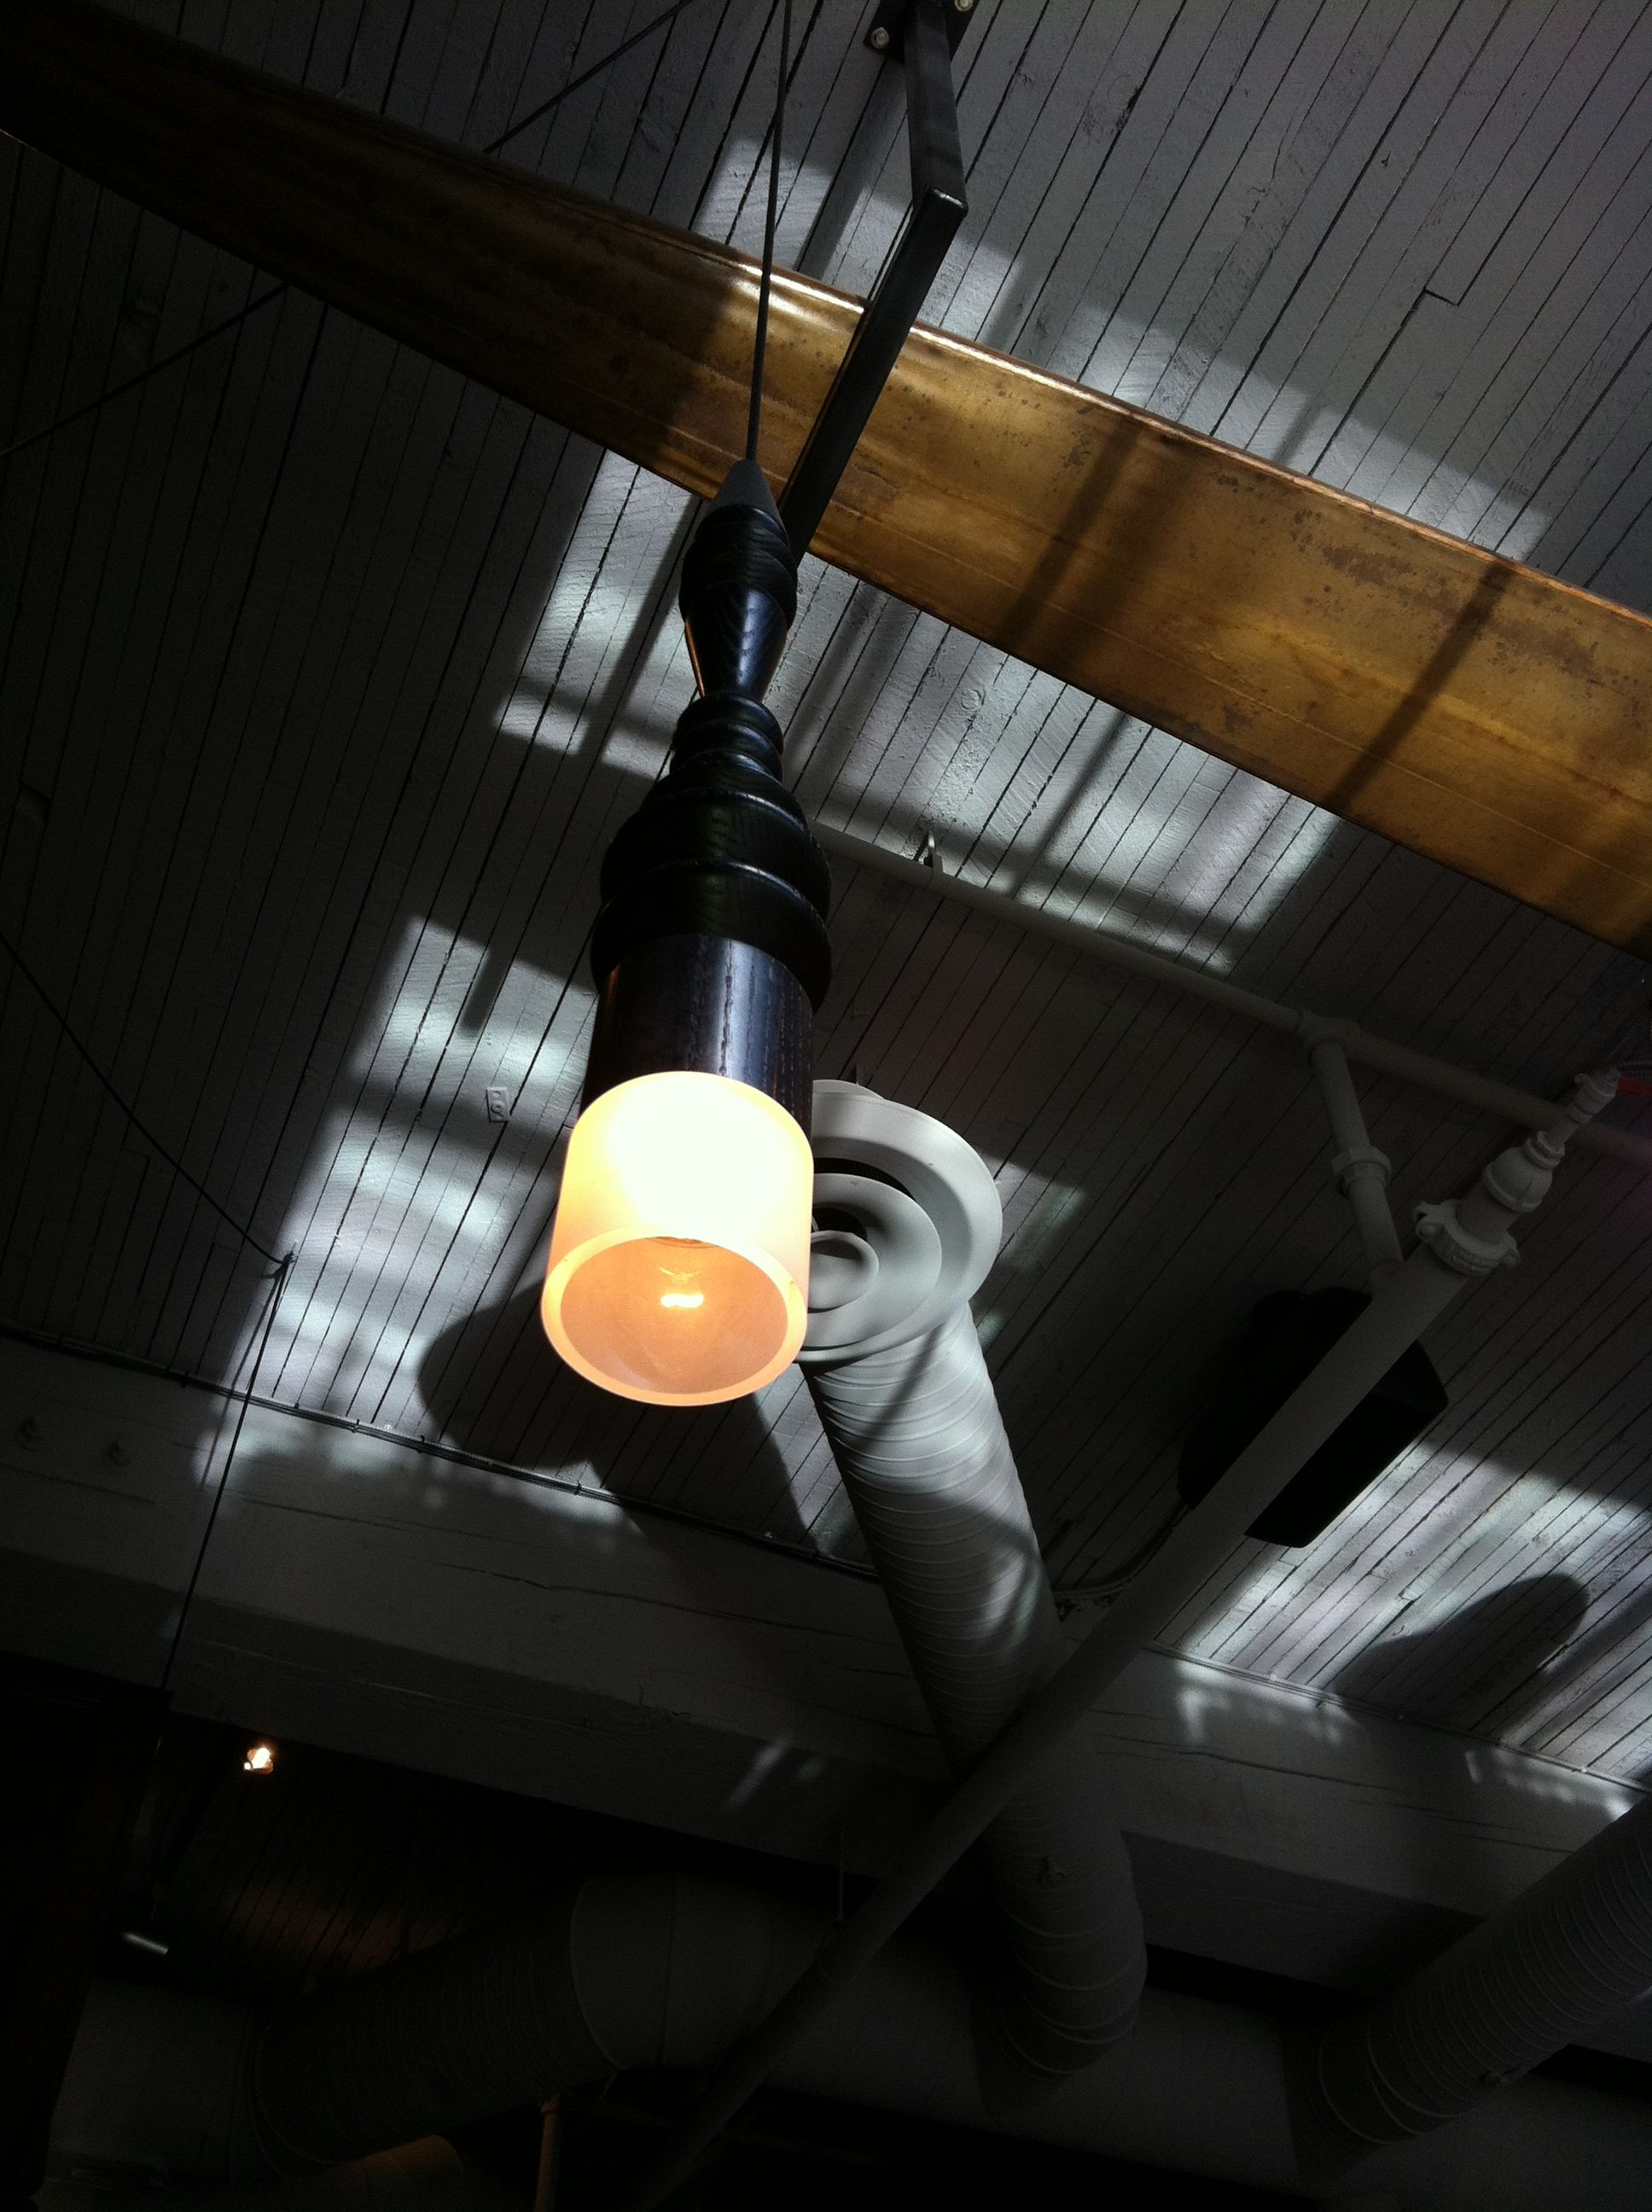 Close Up Of Furniture Leg Re-Purposed As Light Fixture -5883